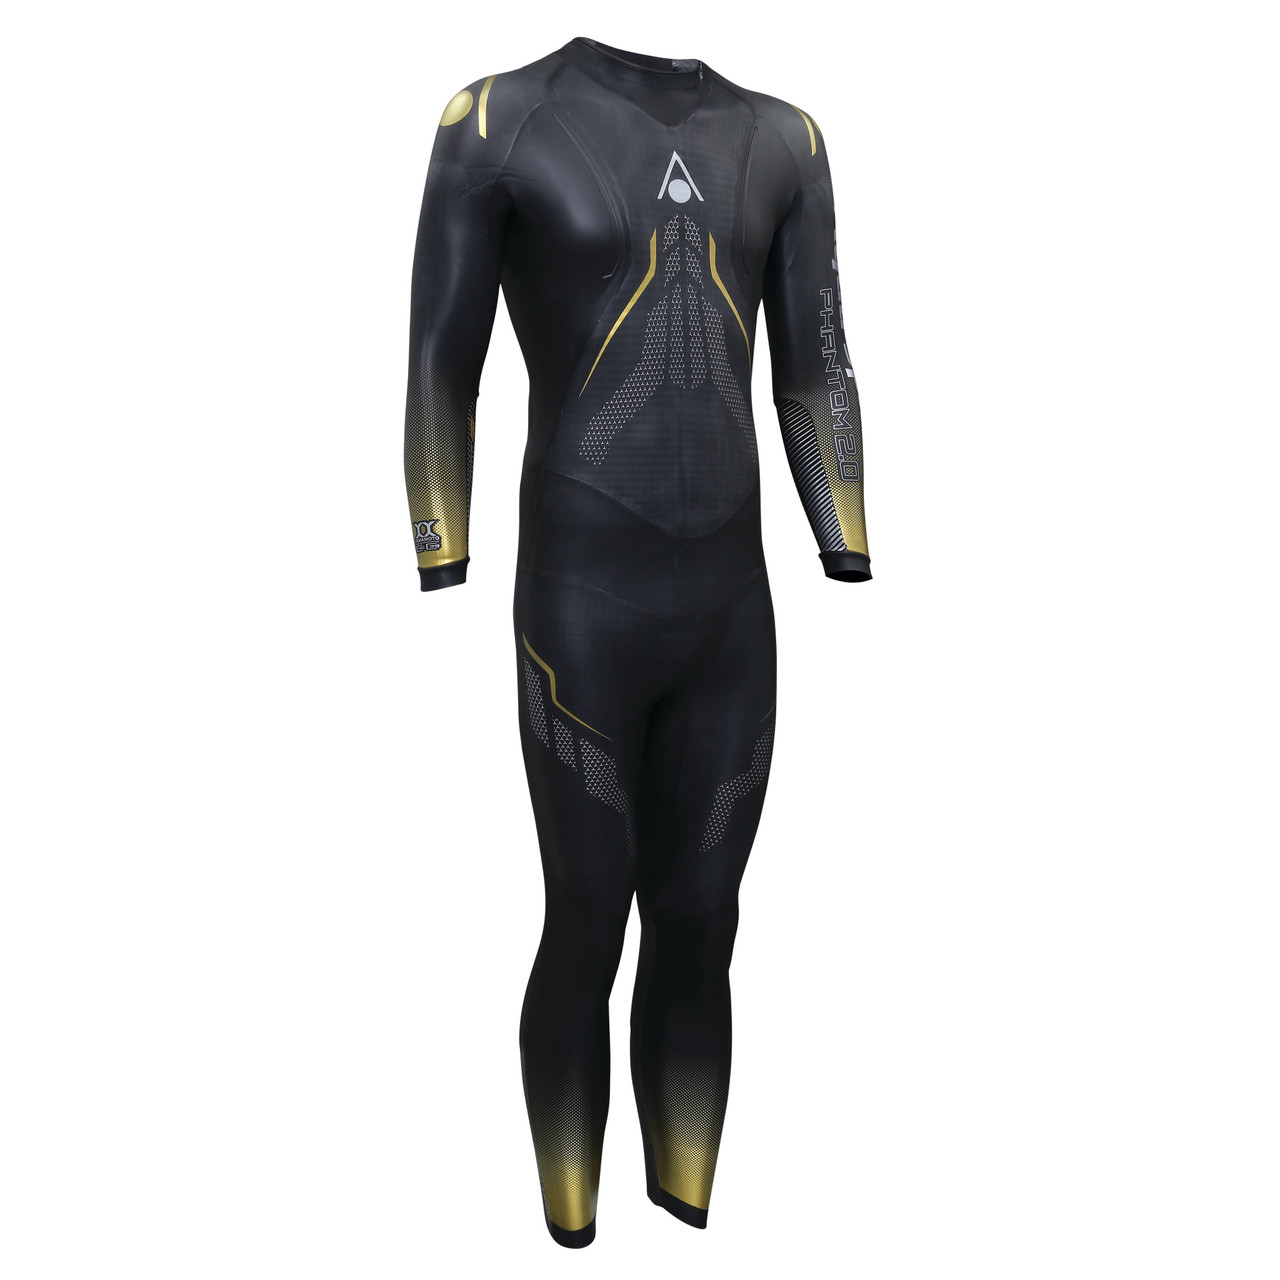 Aqua Sphere Men's Phantom 2.0 Wetsuit - 2019 price